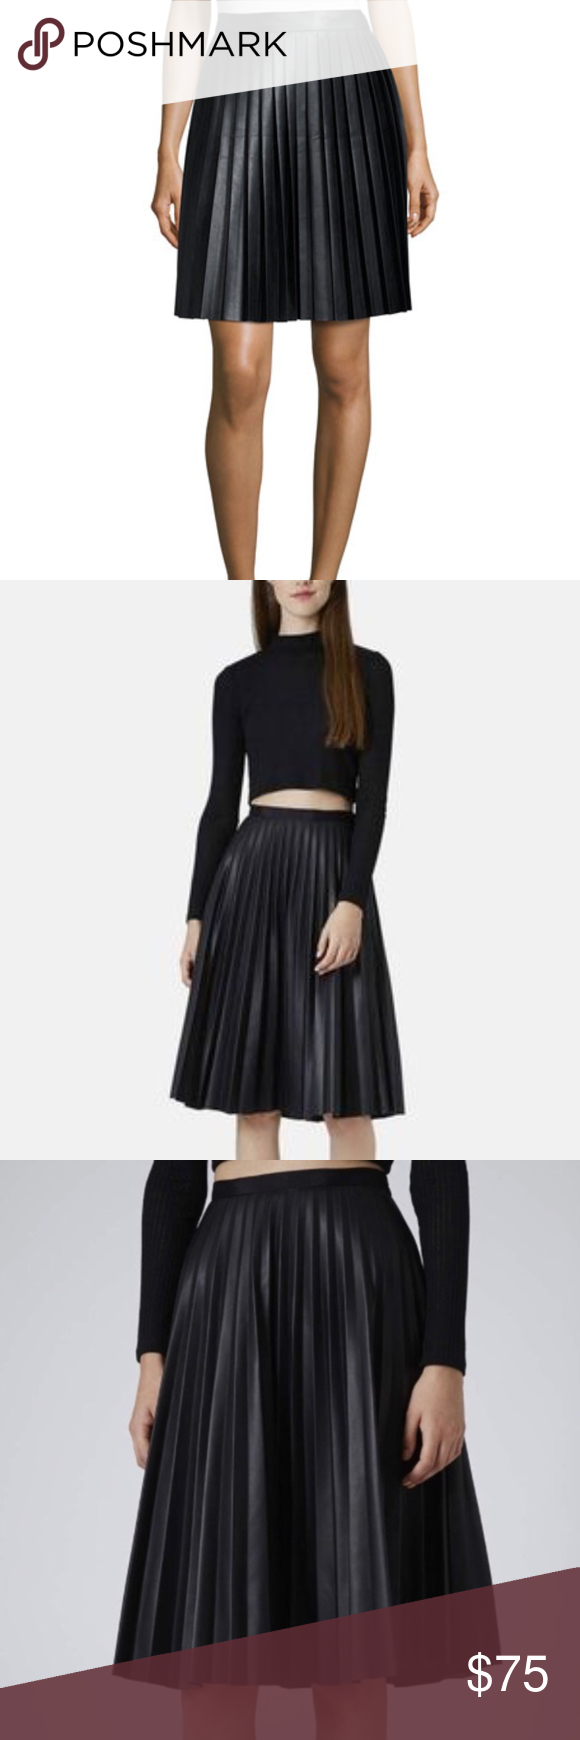 1a3d54c824 MK NWOT pleated pleather midi skirt black nwot pleated pleather skirt high  fashion item good for times of year. MICHAEL Michael Kors Skirts Midi